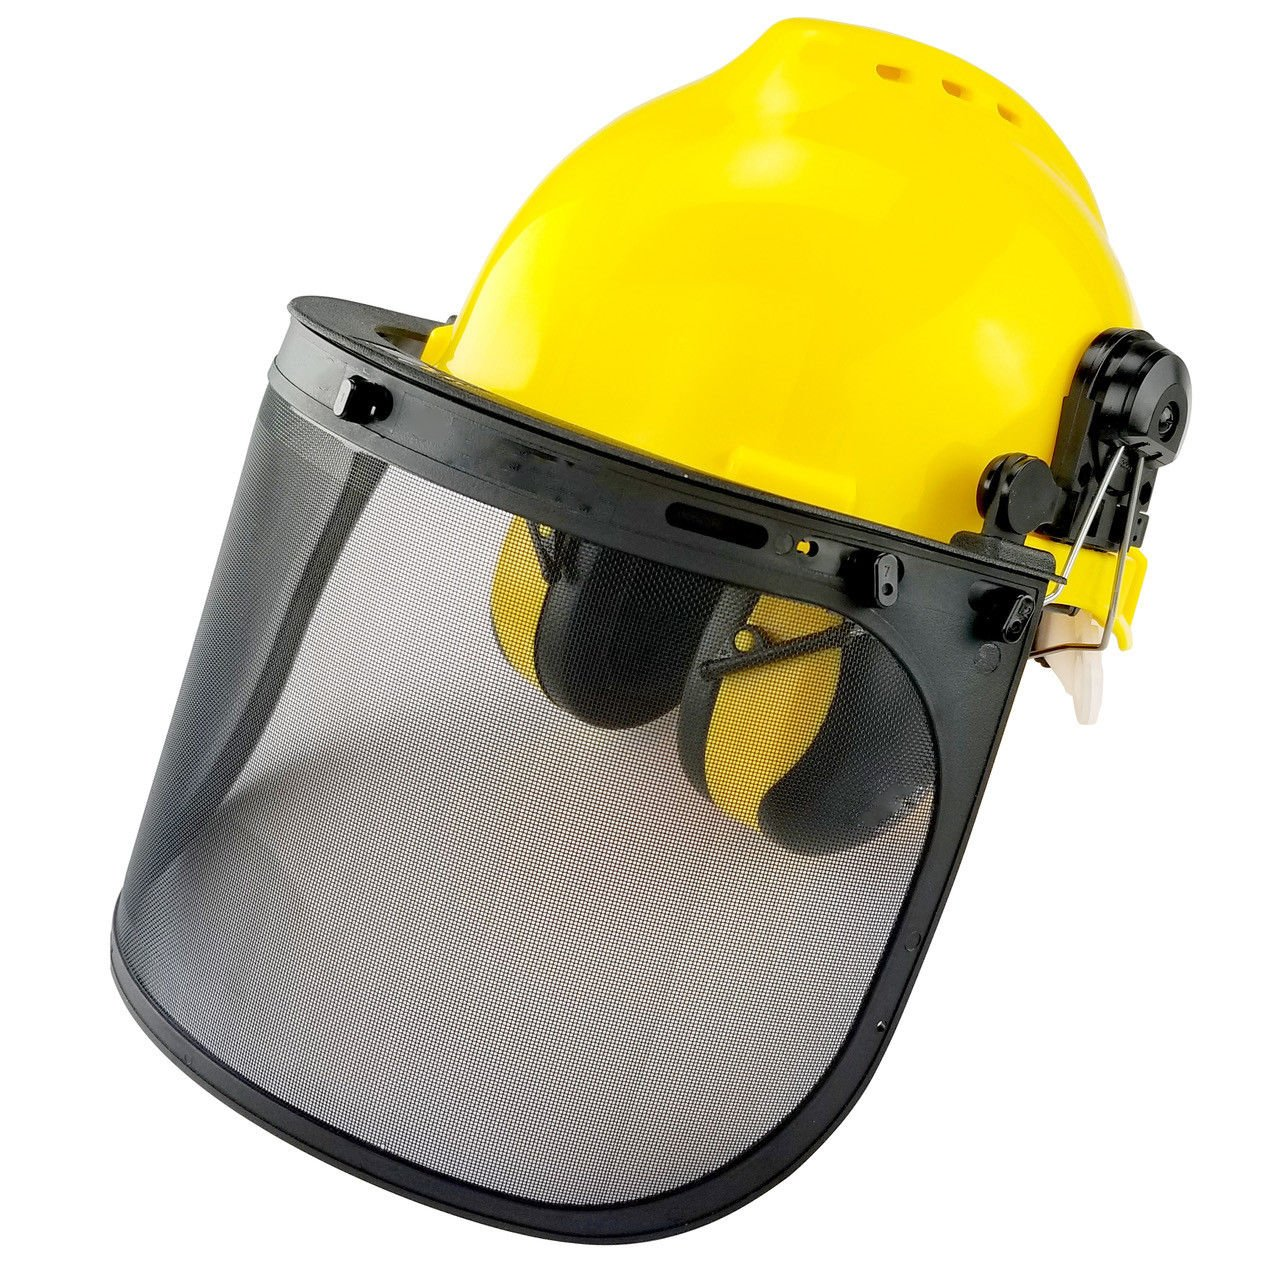 ESKALEX>>Professional Safety Helmet | 4-in-1 Construction Hard Hat Ear Face Protection and This 4-in-1 Safety Helmet Provides Complete face and Hearing Protection While Working with Chainsaws, Brush